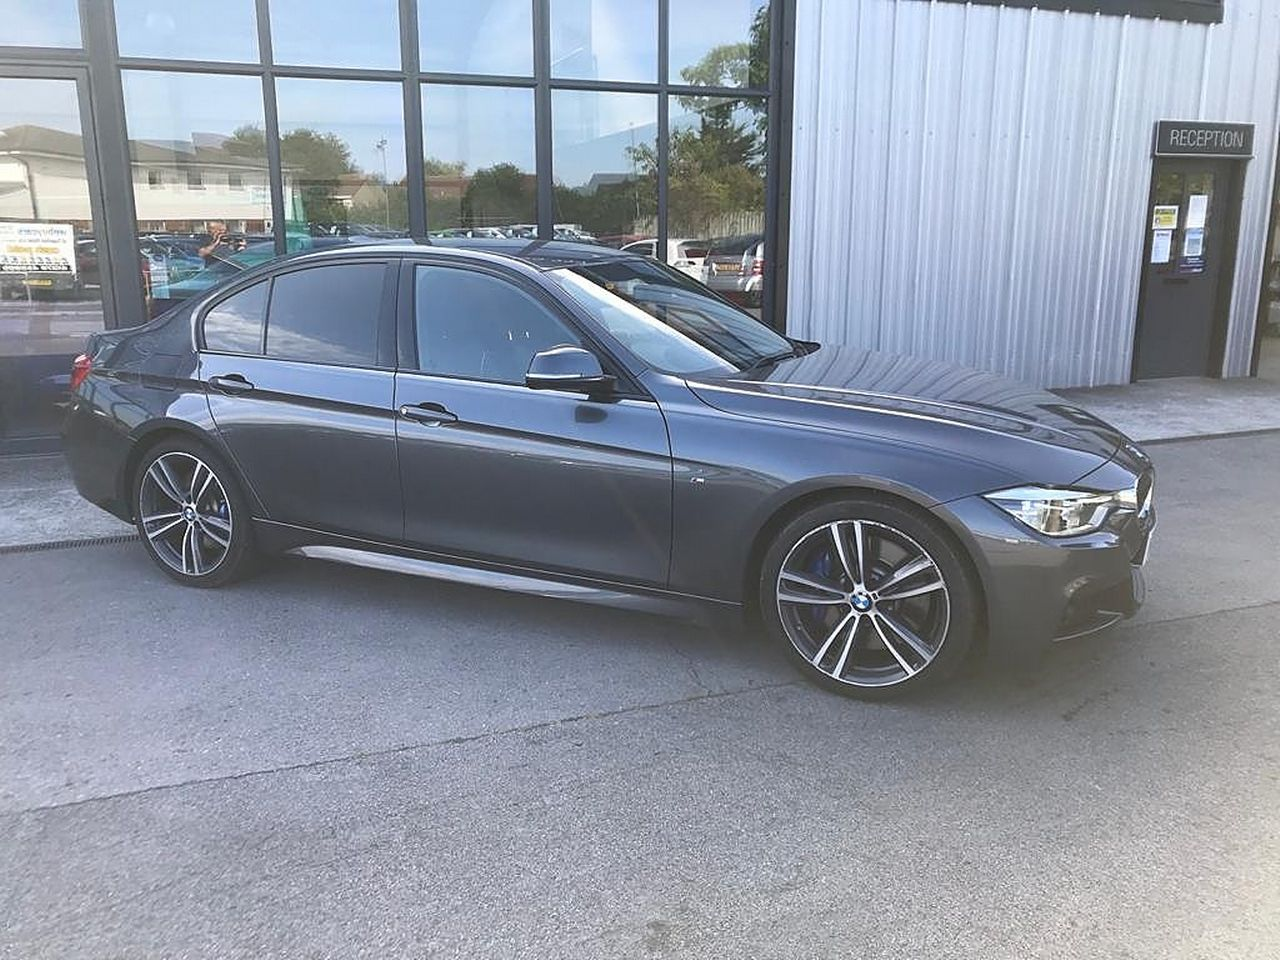 2017 BMW 3 Series 330d M Sport - Picture 1 of 14